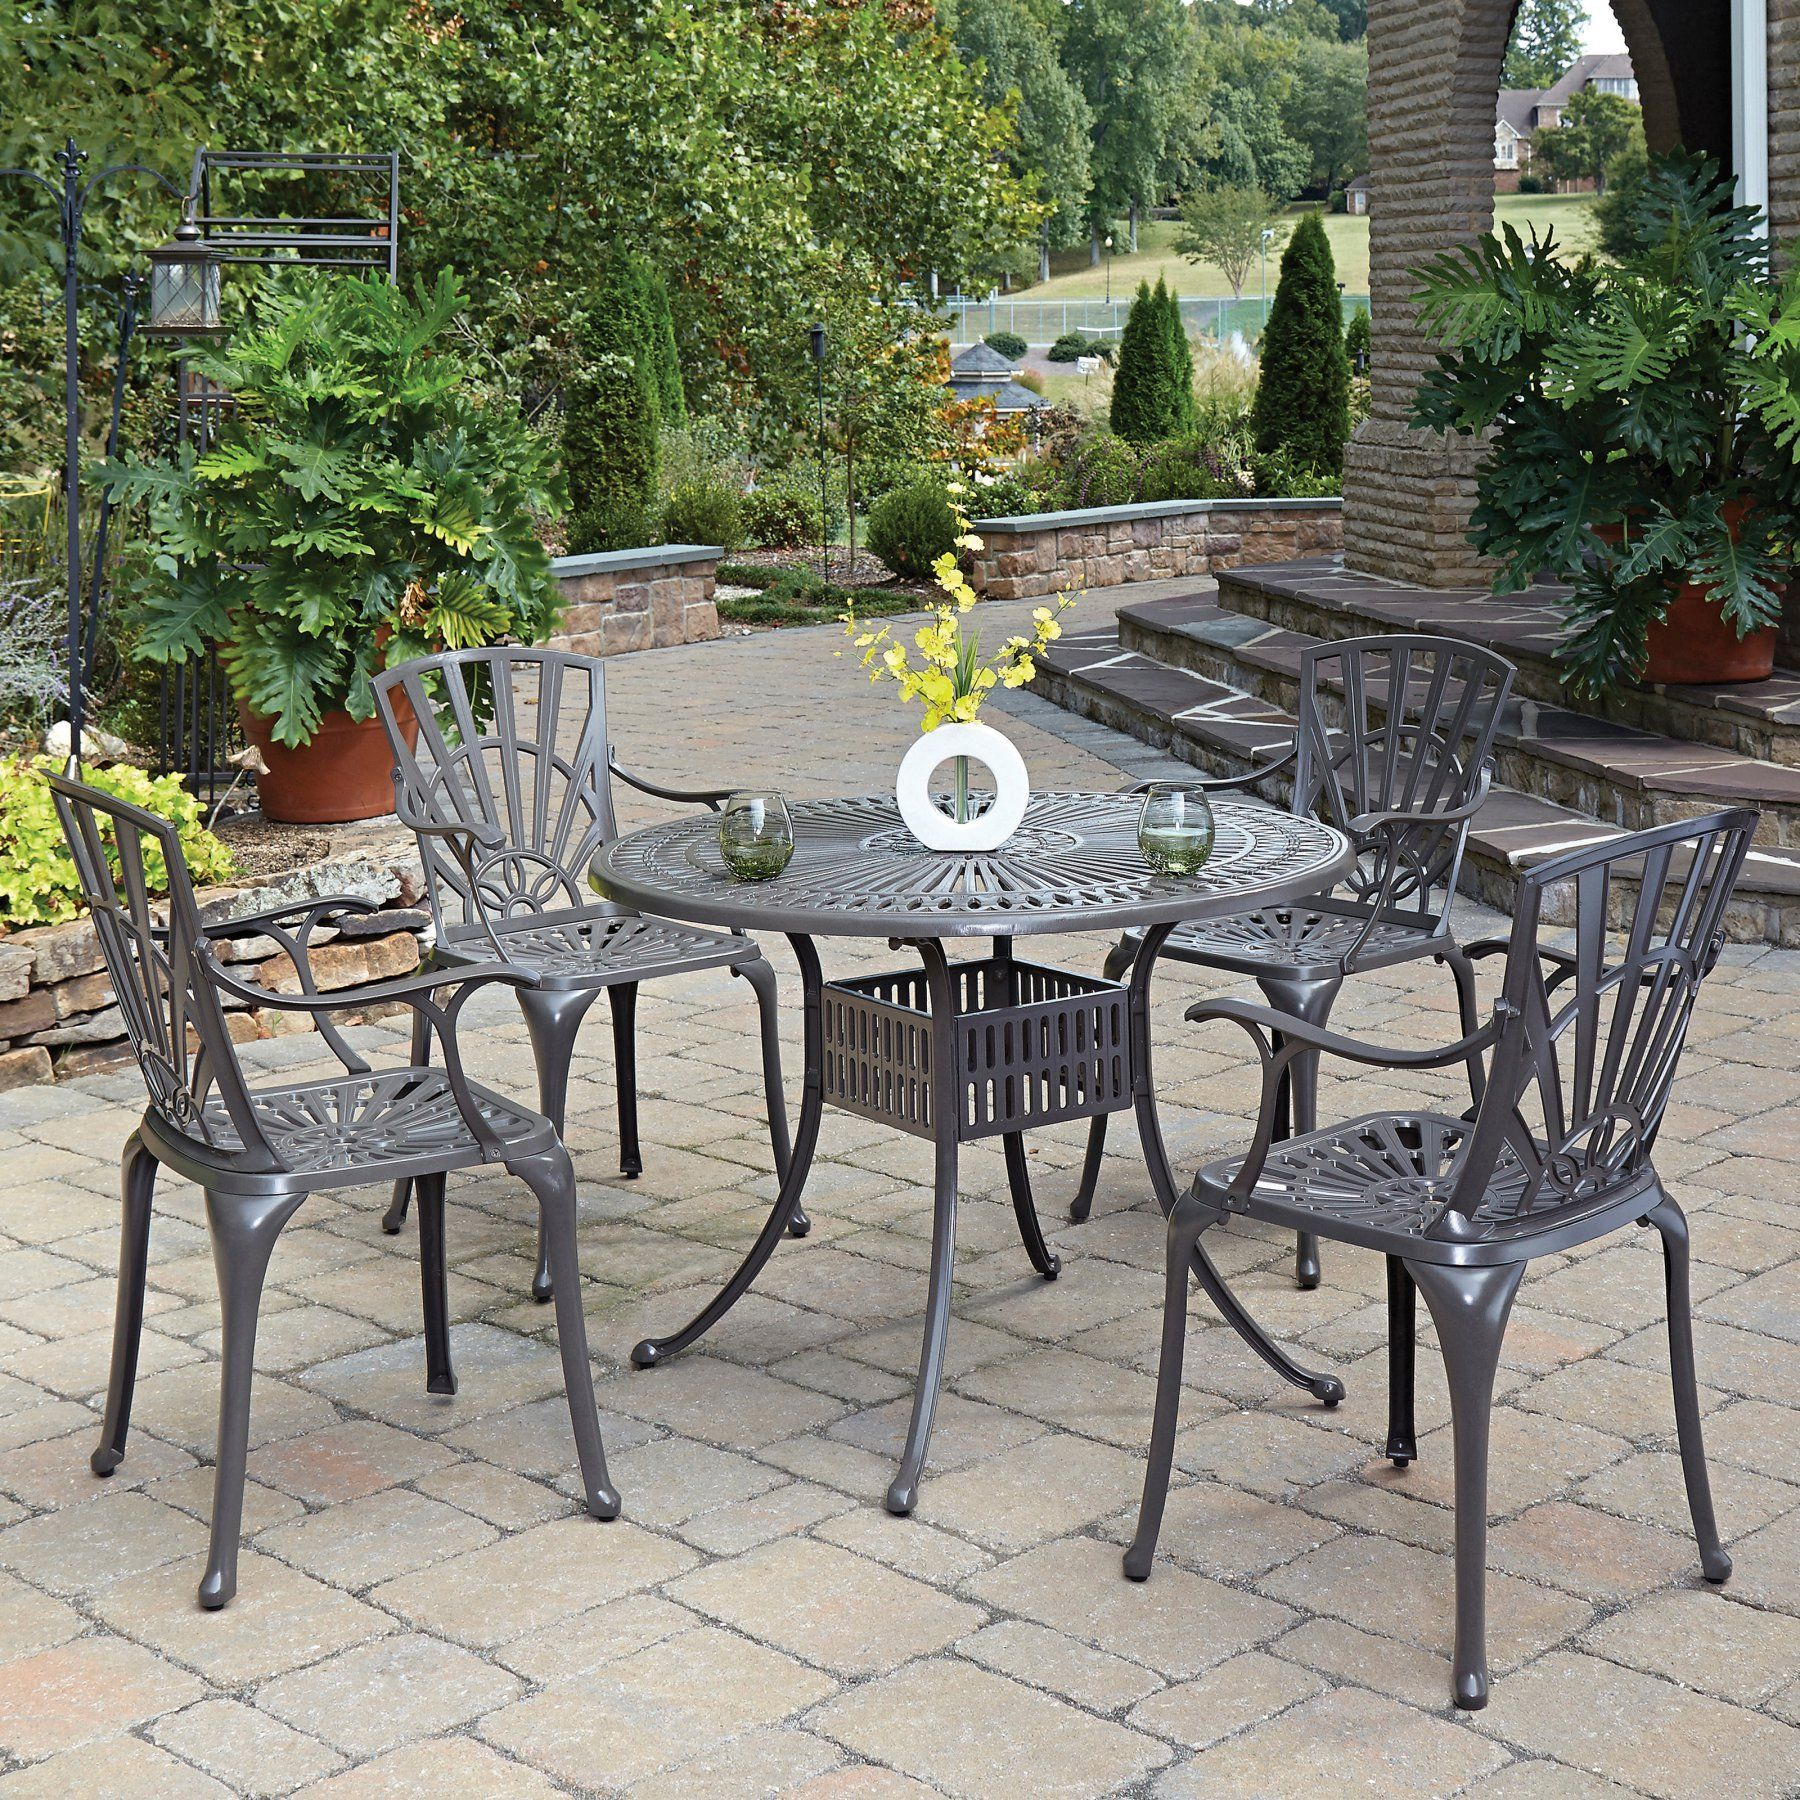 Outdoor Home Styles Largo Cast Aluminum 42 In 5 Piece Round Patio Dining Set With Optional Umbrella And Cushions Outdoor Dining Set Patio Outdoor Dining